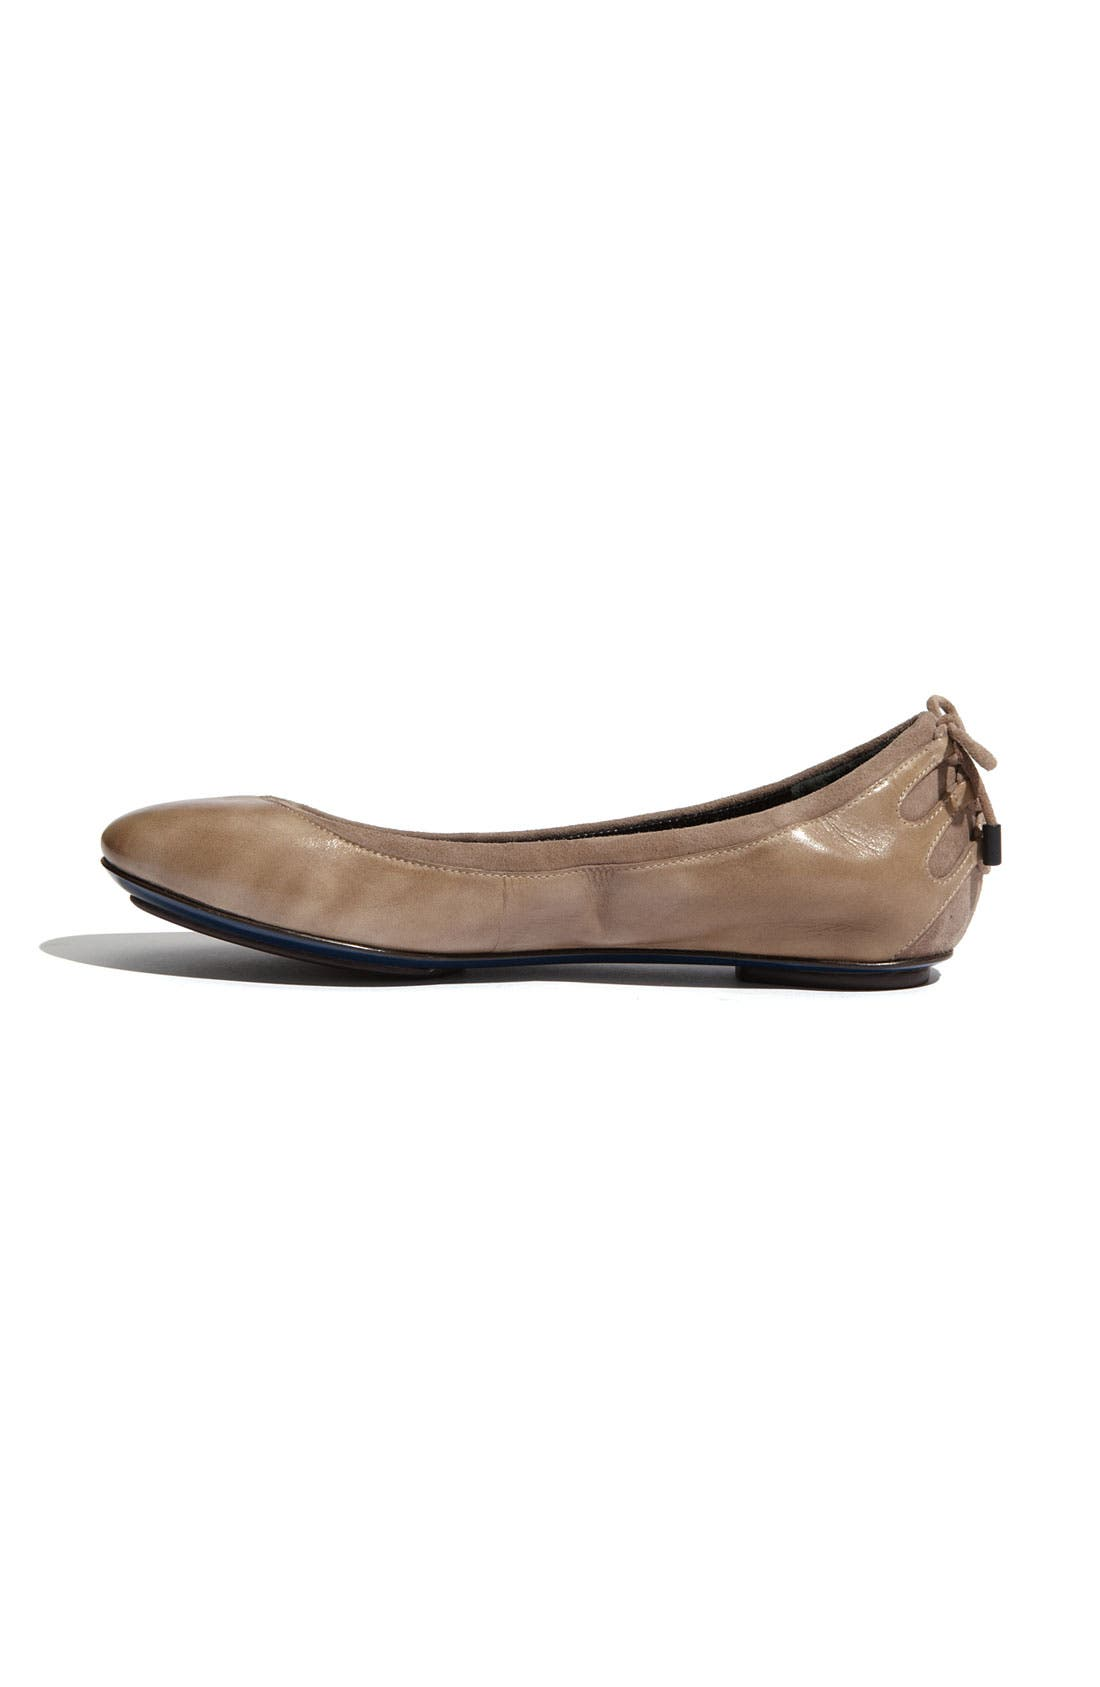 ,                             Maria Sharapova by Cole Haan 'Air Bacara' Flat,                             Alternate thumbnail 8, color,                             020